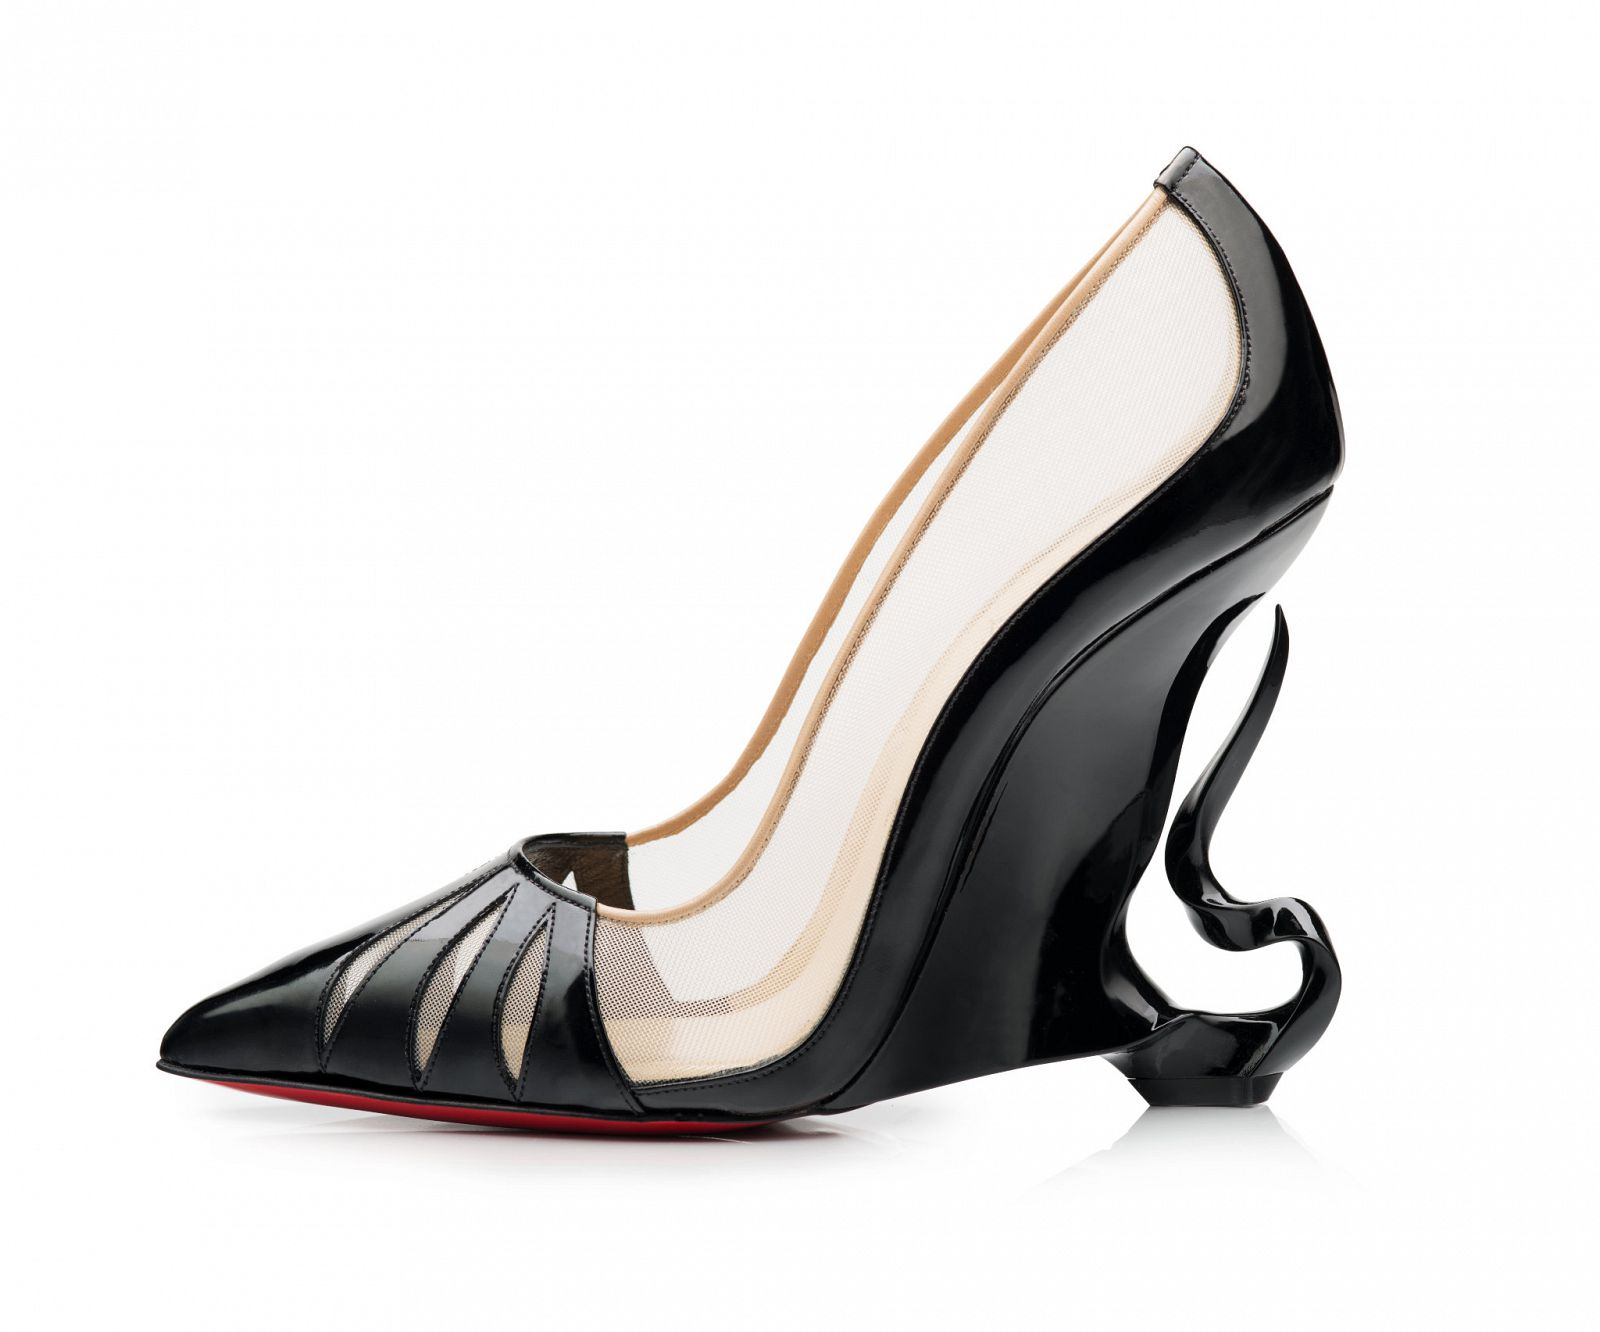 95d5aa8845ff News - Christian Louboutin Online - Something Wicked This Way Comes  Meet  Malangeli